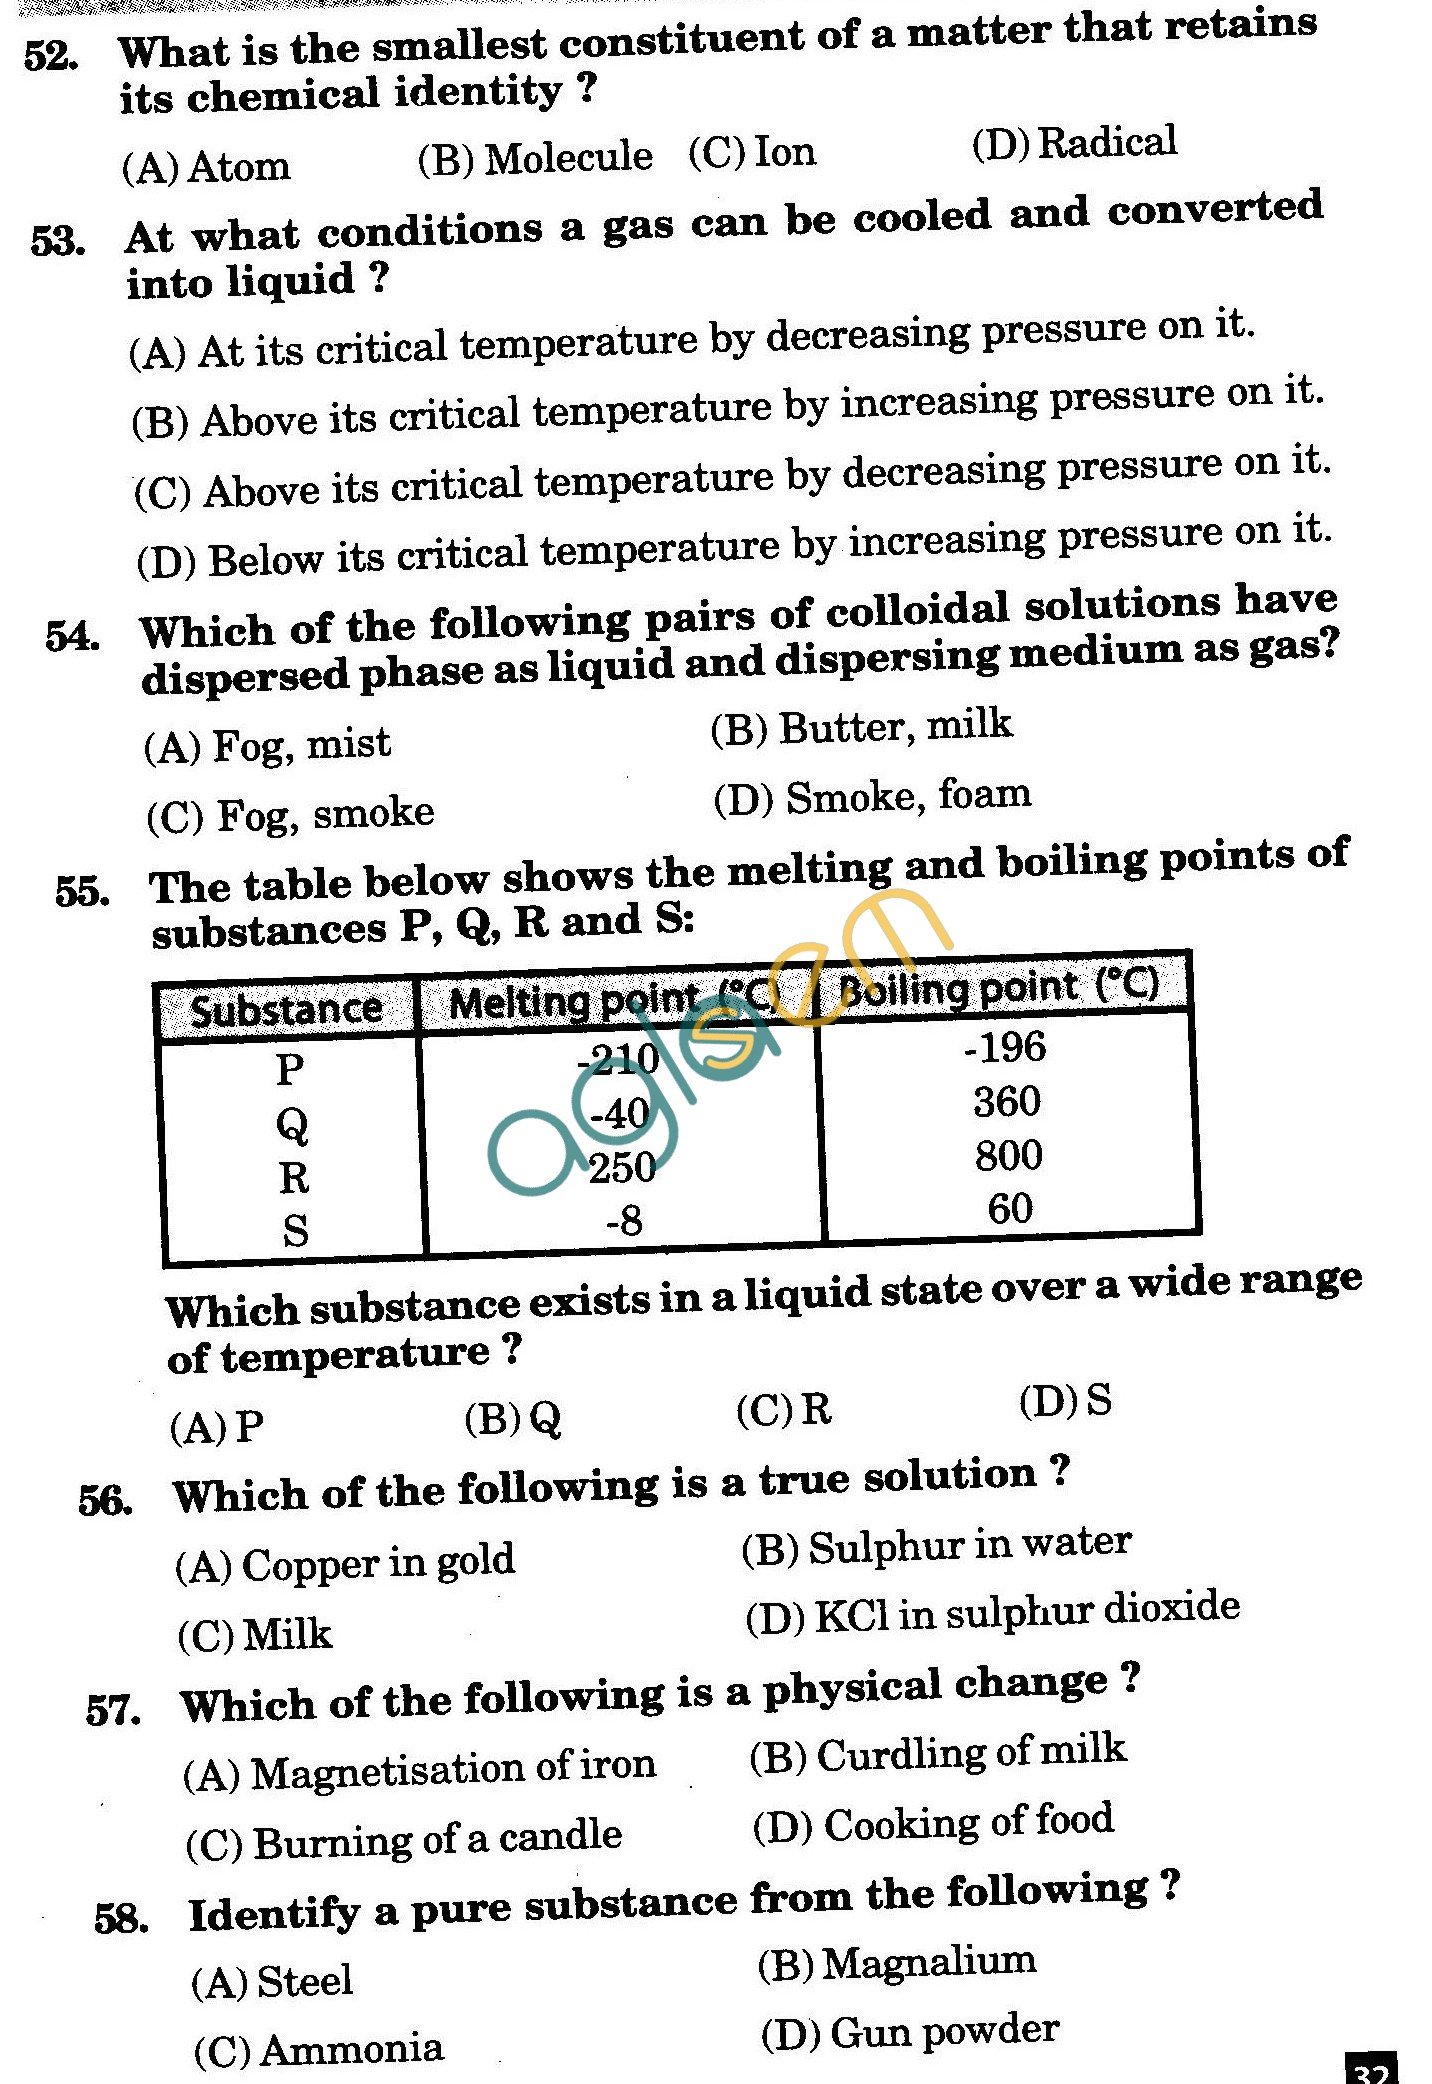 NSTSE 2010: Class IX Question Paper with Answers - Chemistry